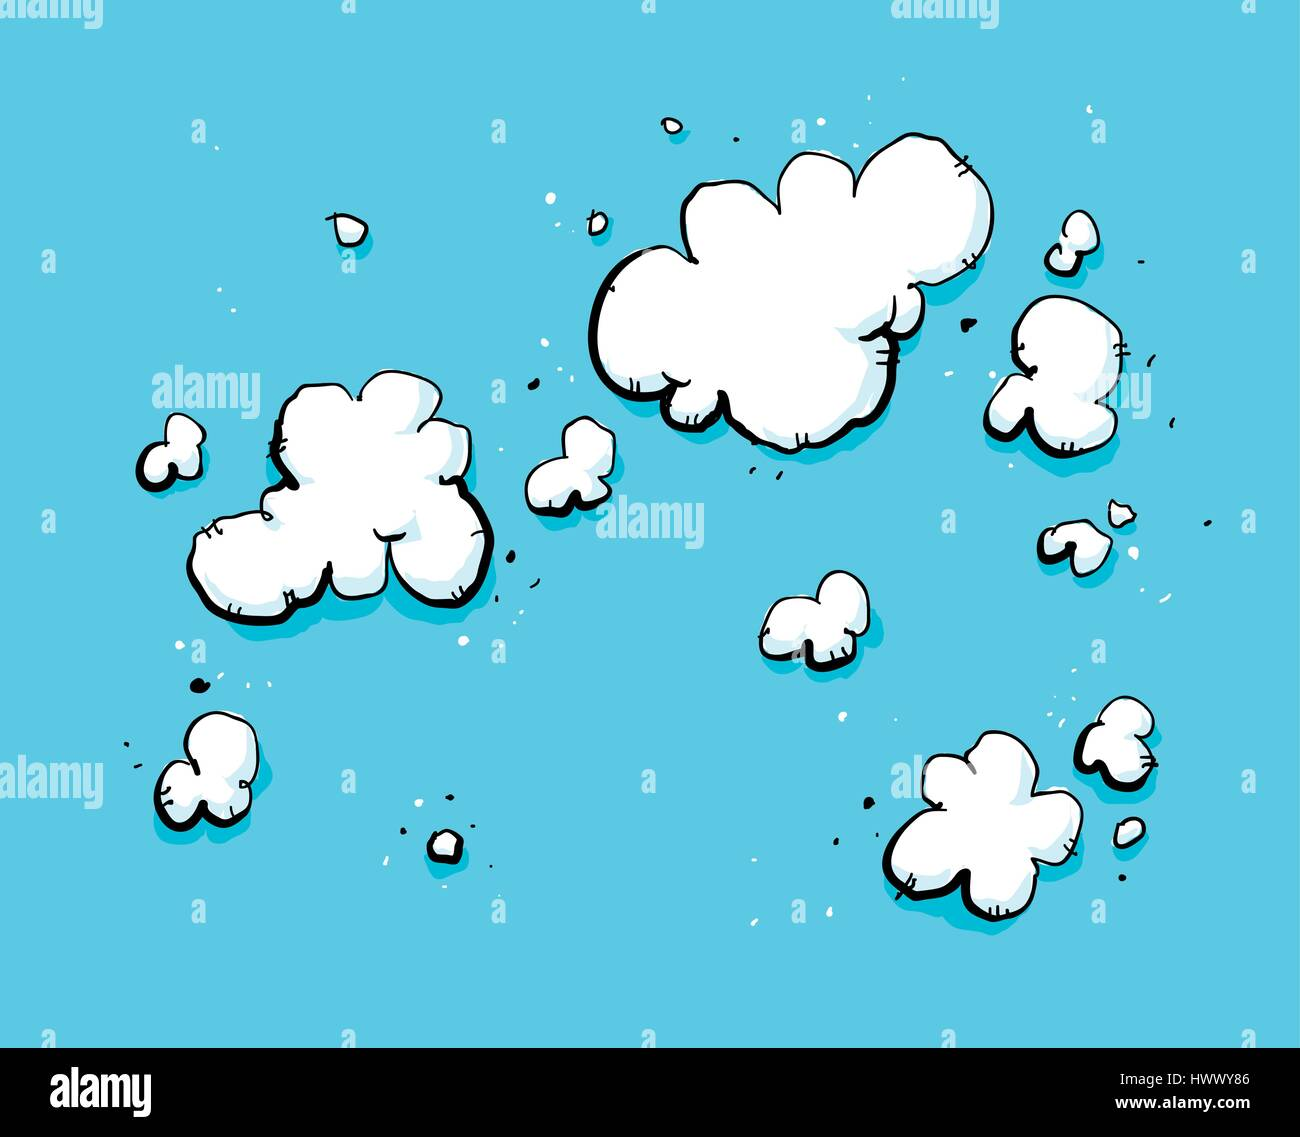 Backdrop cartoon of a deep blue sky with messy, white clouds. - Stock Image